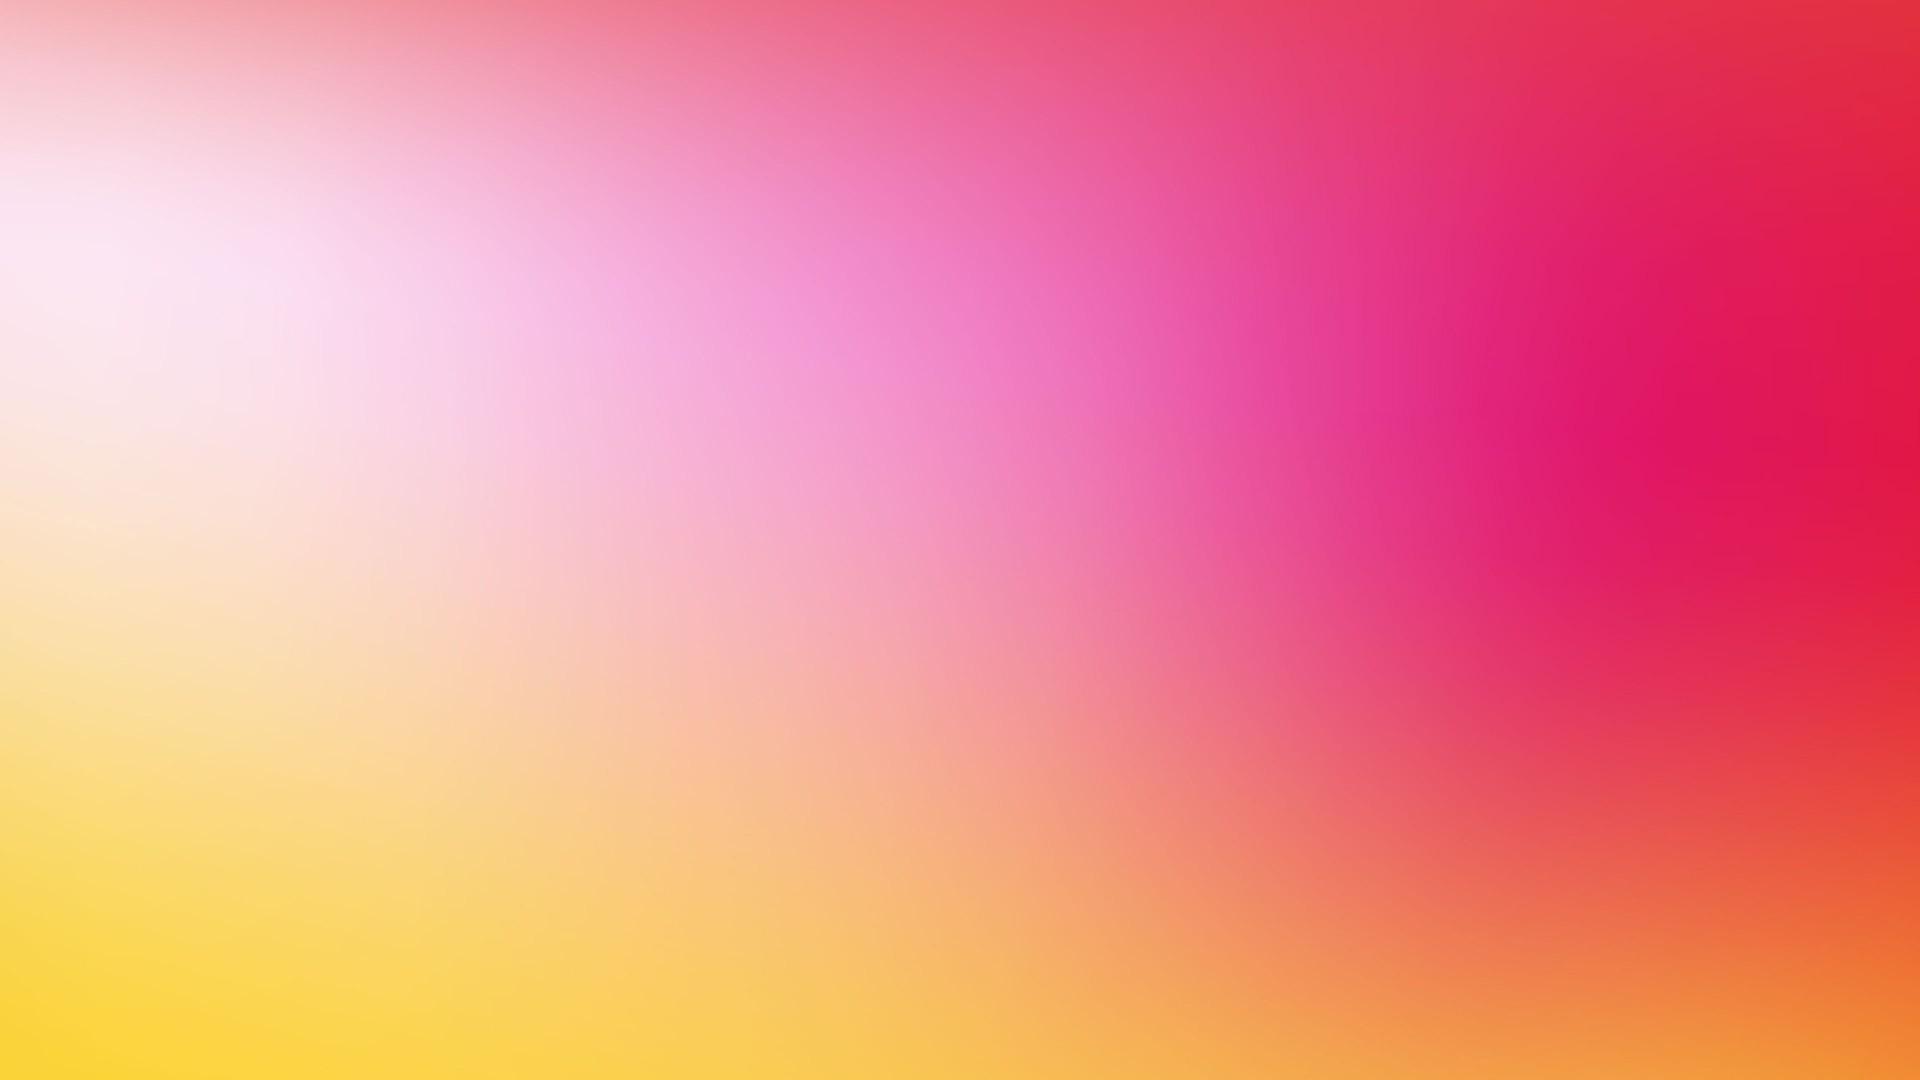 Gradient Wallpaper and Background